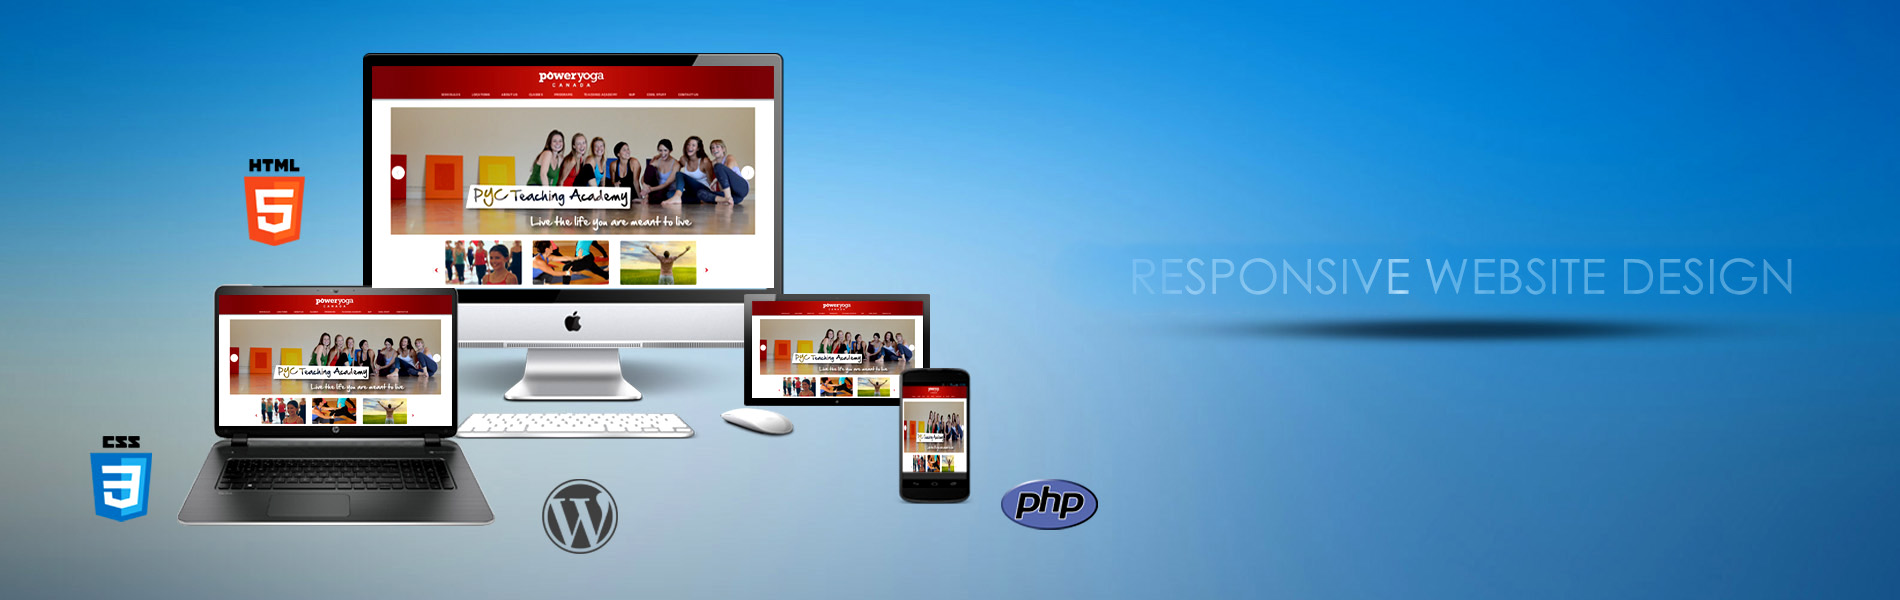 responsive website design company in NYC